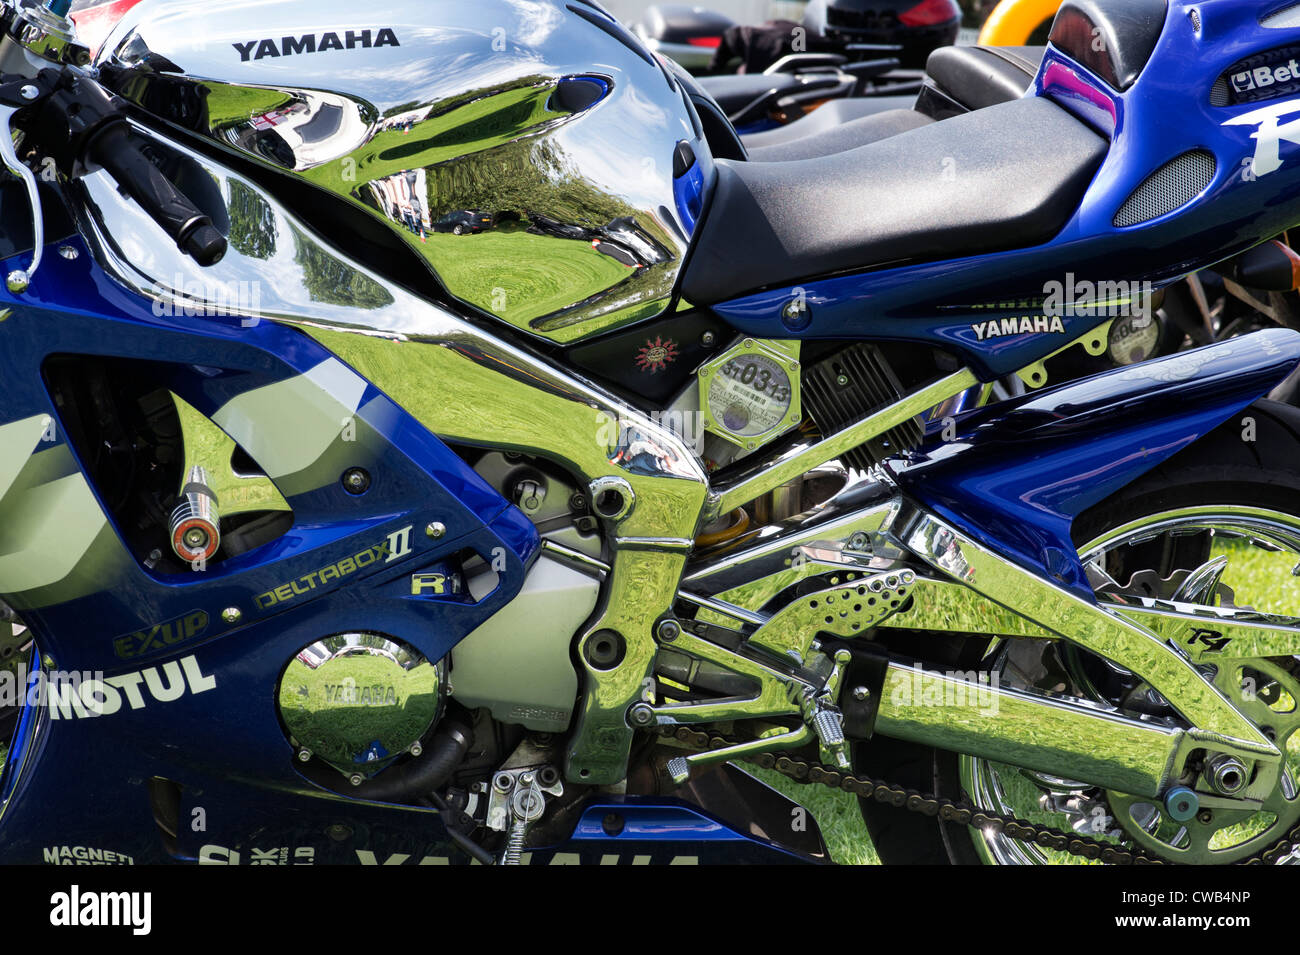 Chrome and custom Yamaha R1. Sports Motorcycle detail - Stock Image